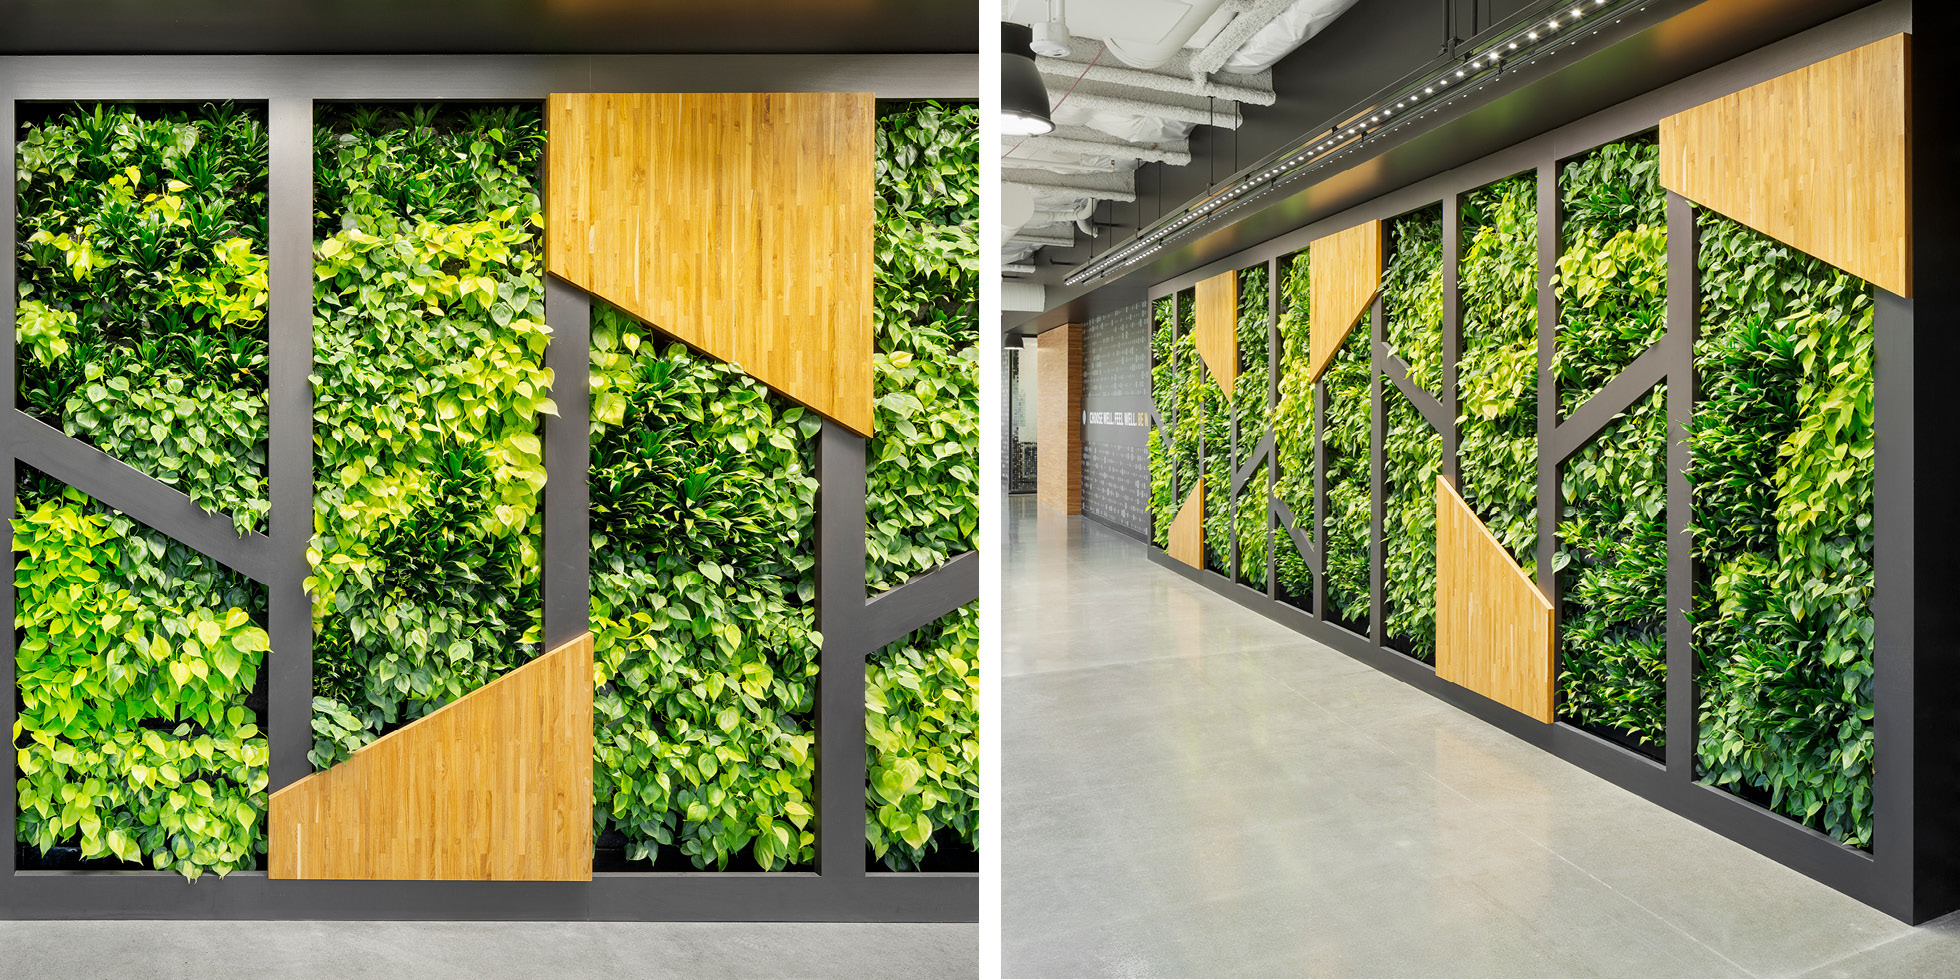 Symantec Living Wall by Habitat Horticulture - View 4